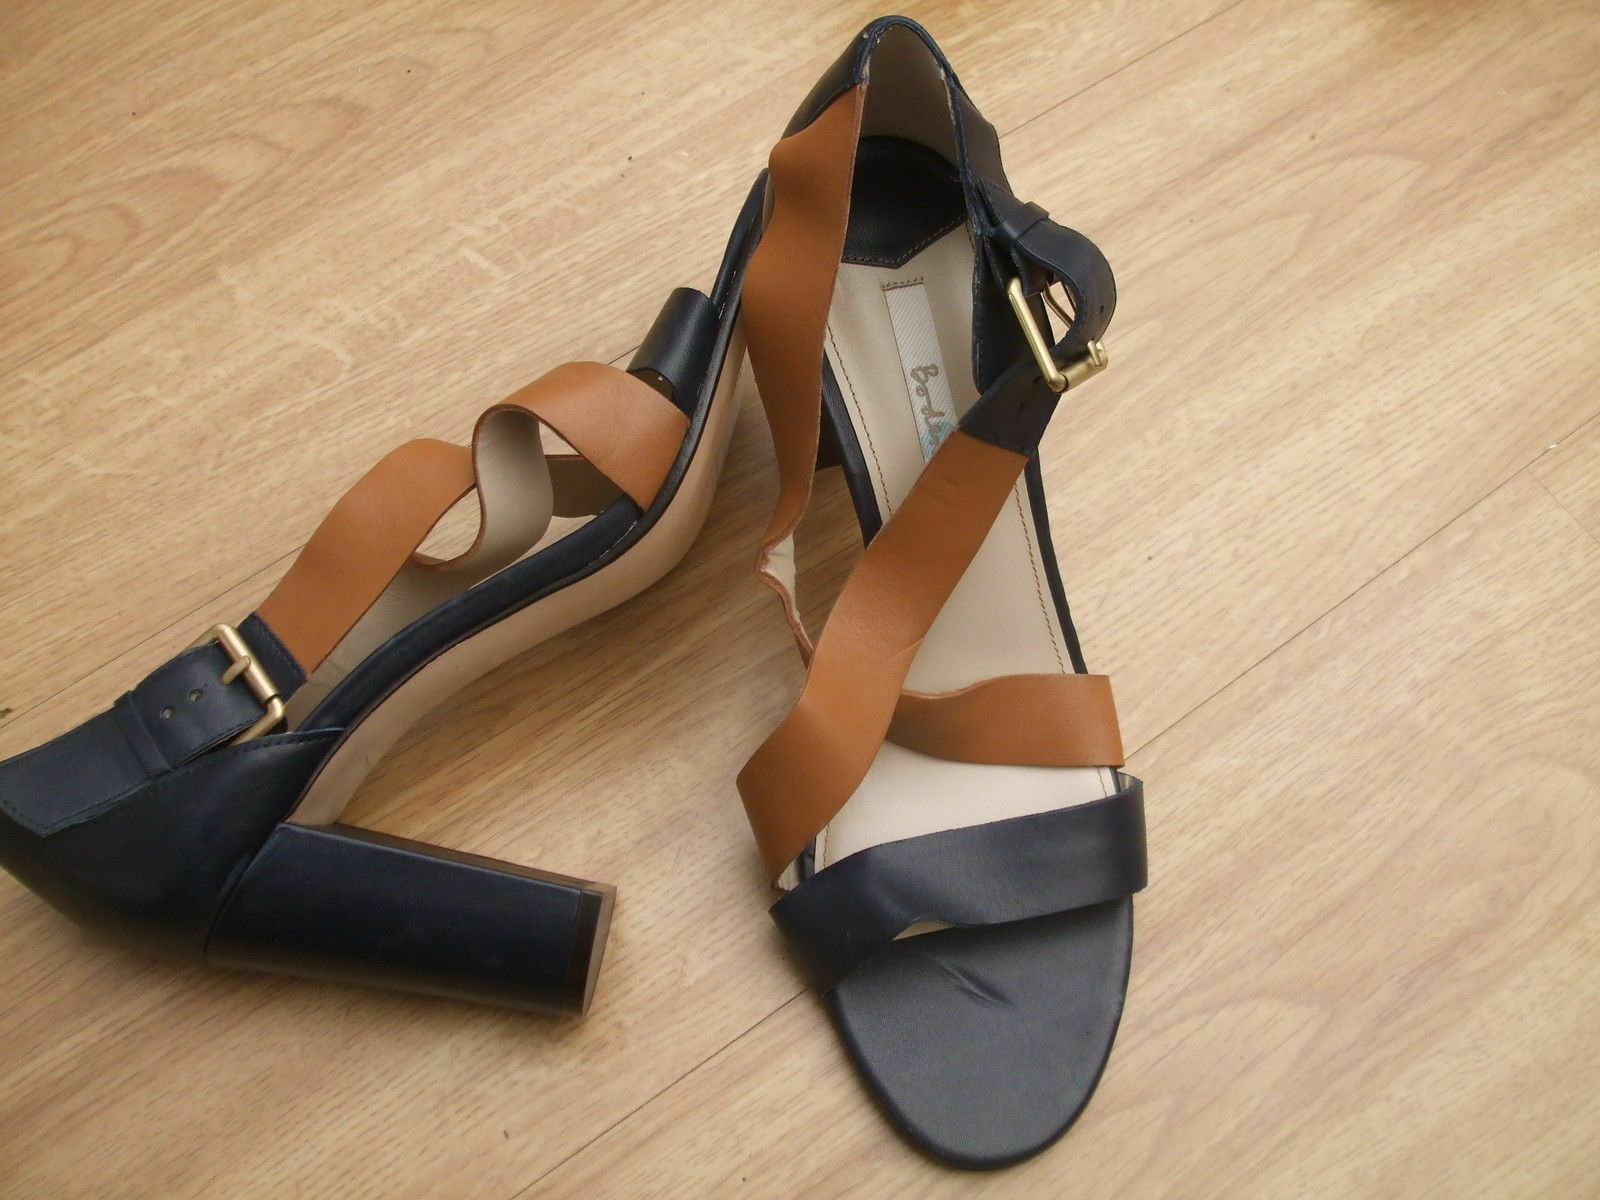 BODEN  NAVY + BROWN COLOUR  LEATHER COLOURBLOCK HEELS  SIZE 42==8.5  BNWOB